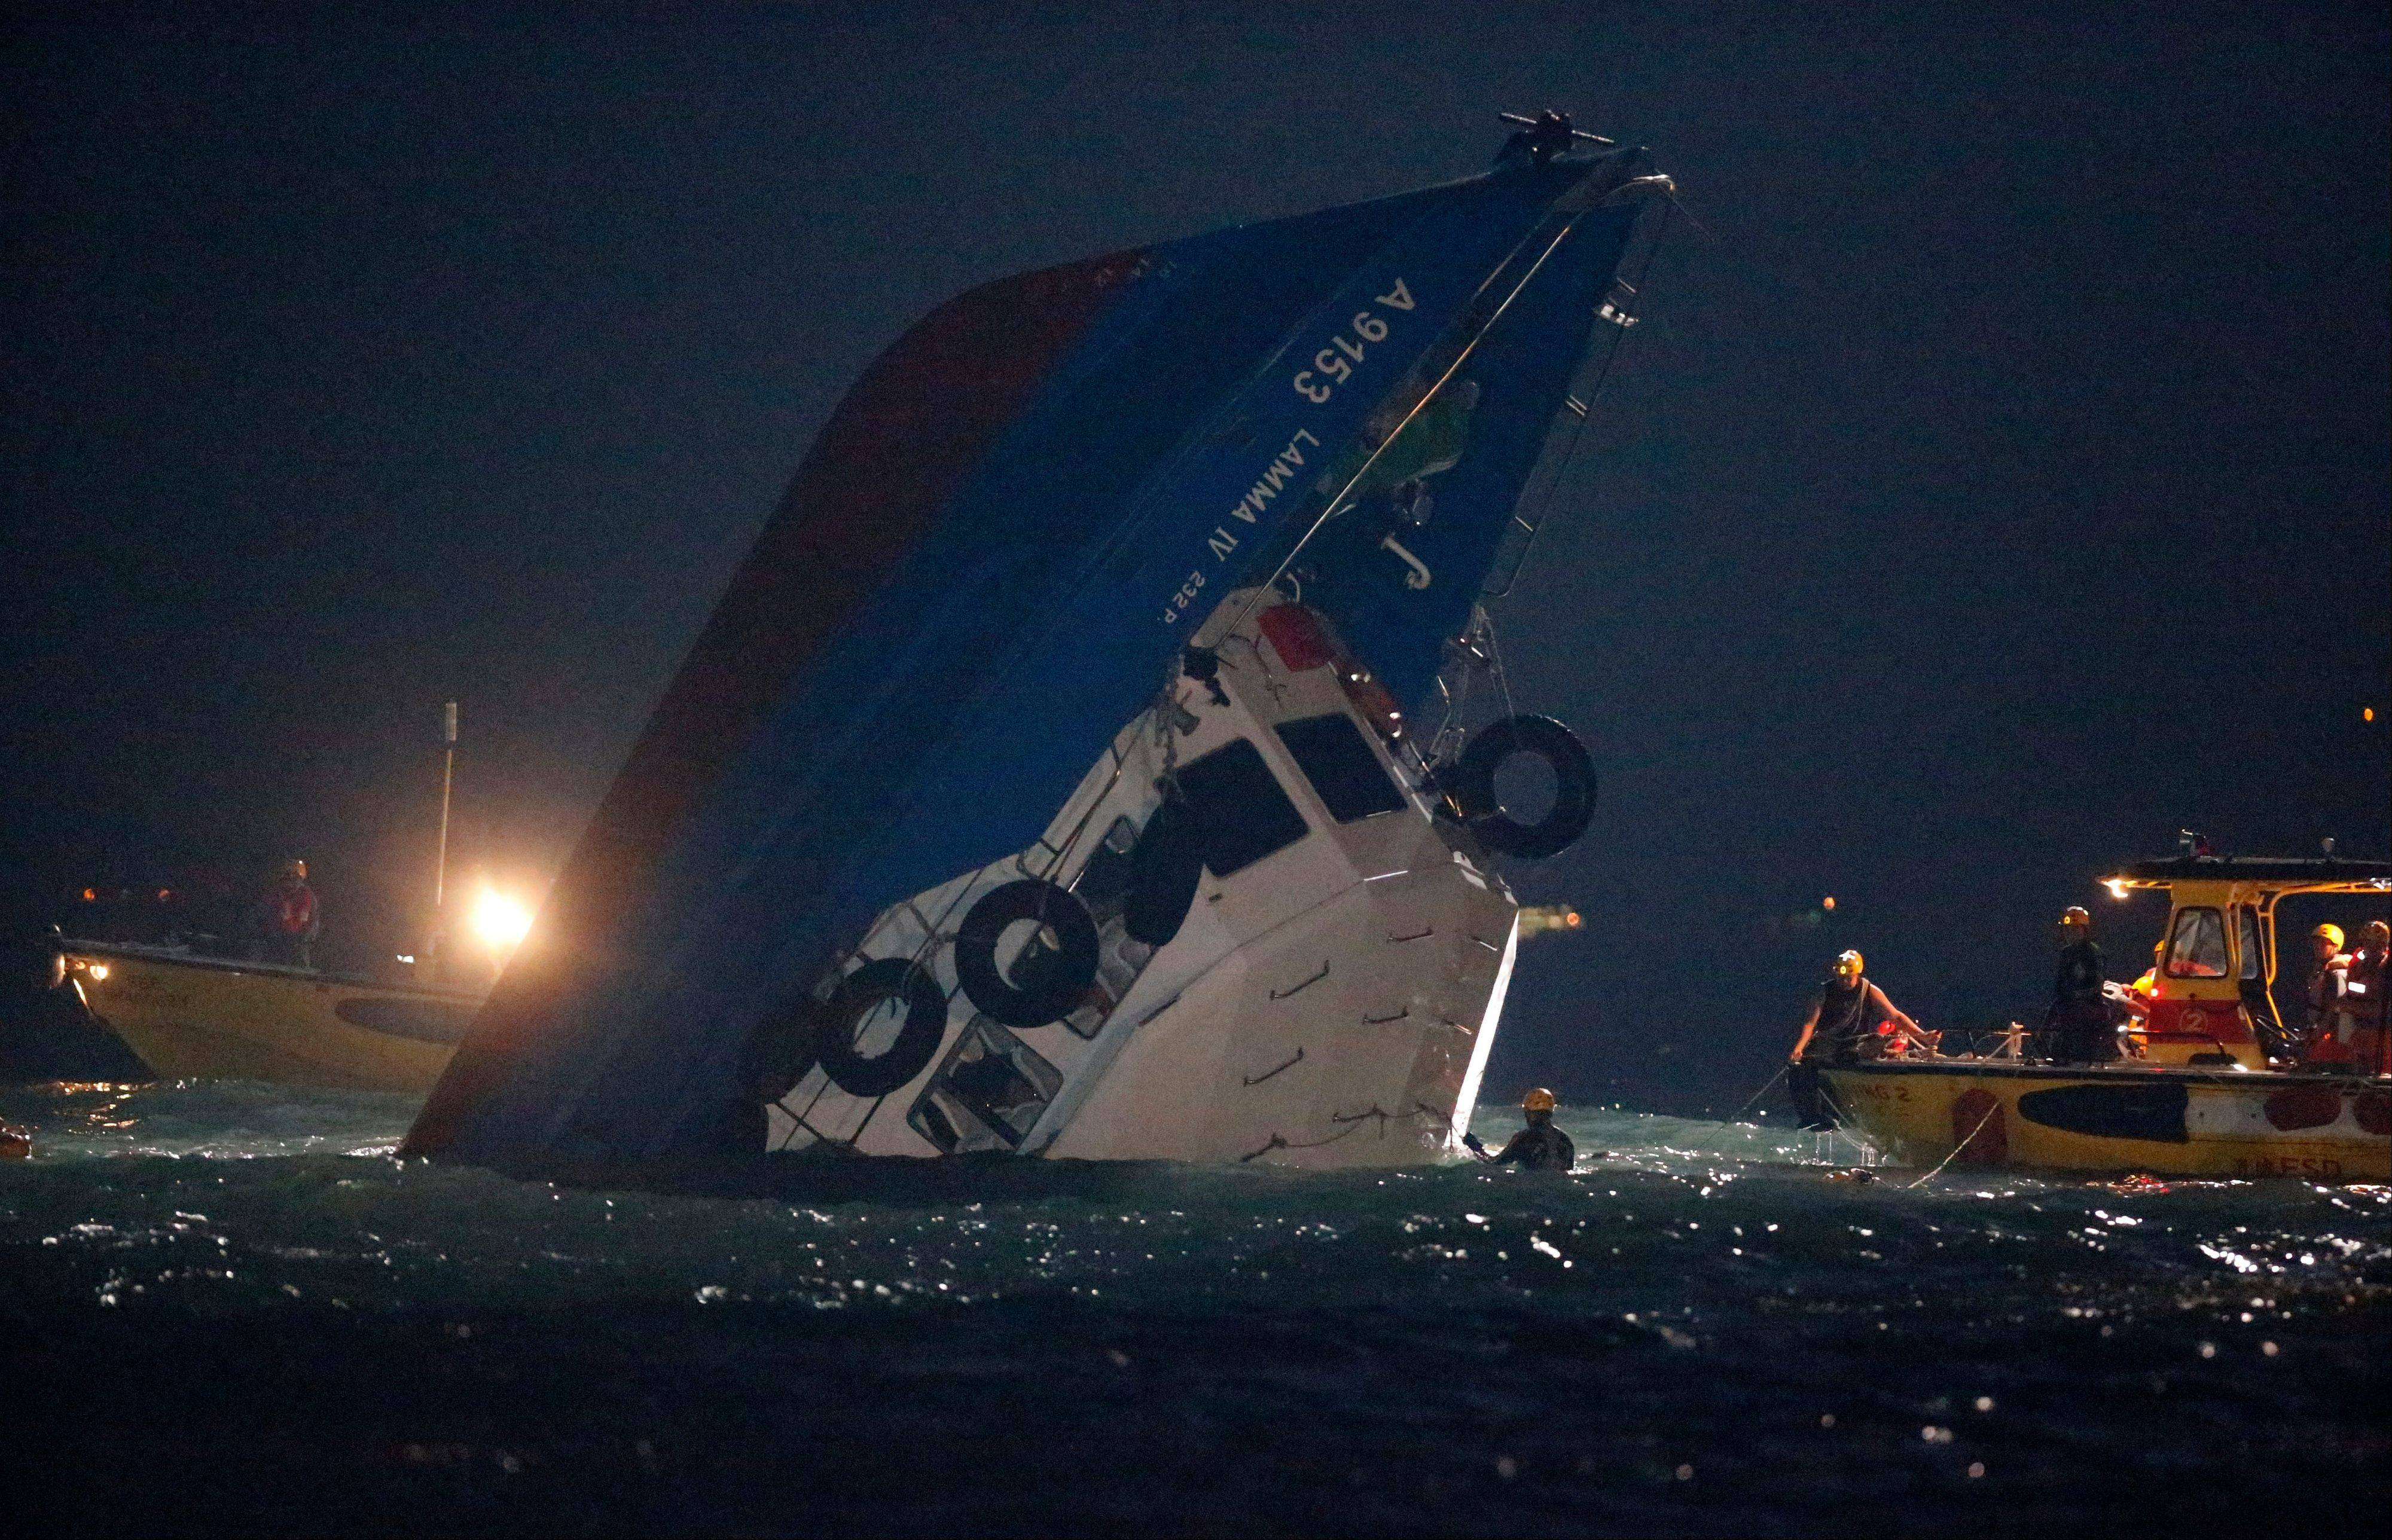 Rescuers check on a half-submerged boat after it collided Monday night near Lamma Island, off the southwestern coast of Hong Kong Island Tuesday, Oct. 2, 2012. Authorities in Hong Kong have rescued 101 people after a ferry collided with a tugboat and sank. A local broadcaster says eight people died.